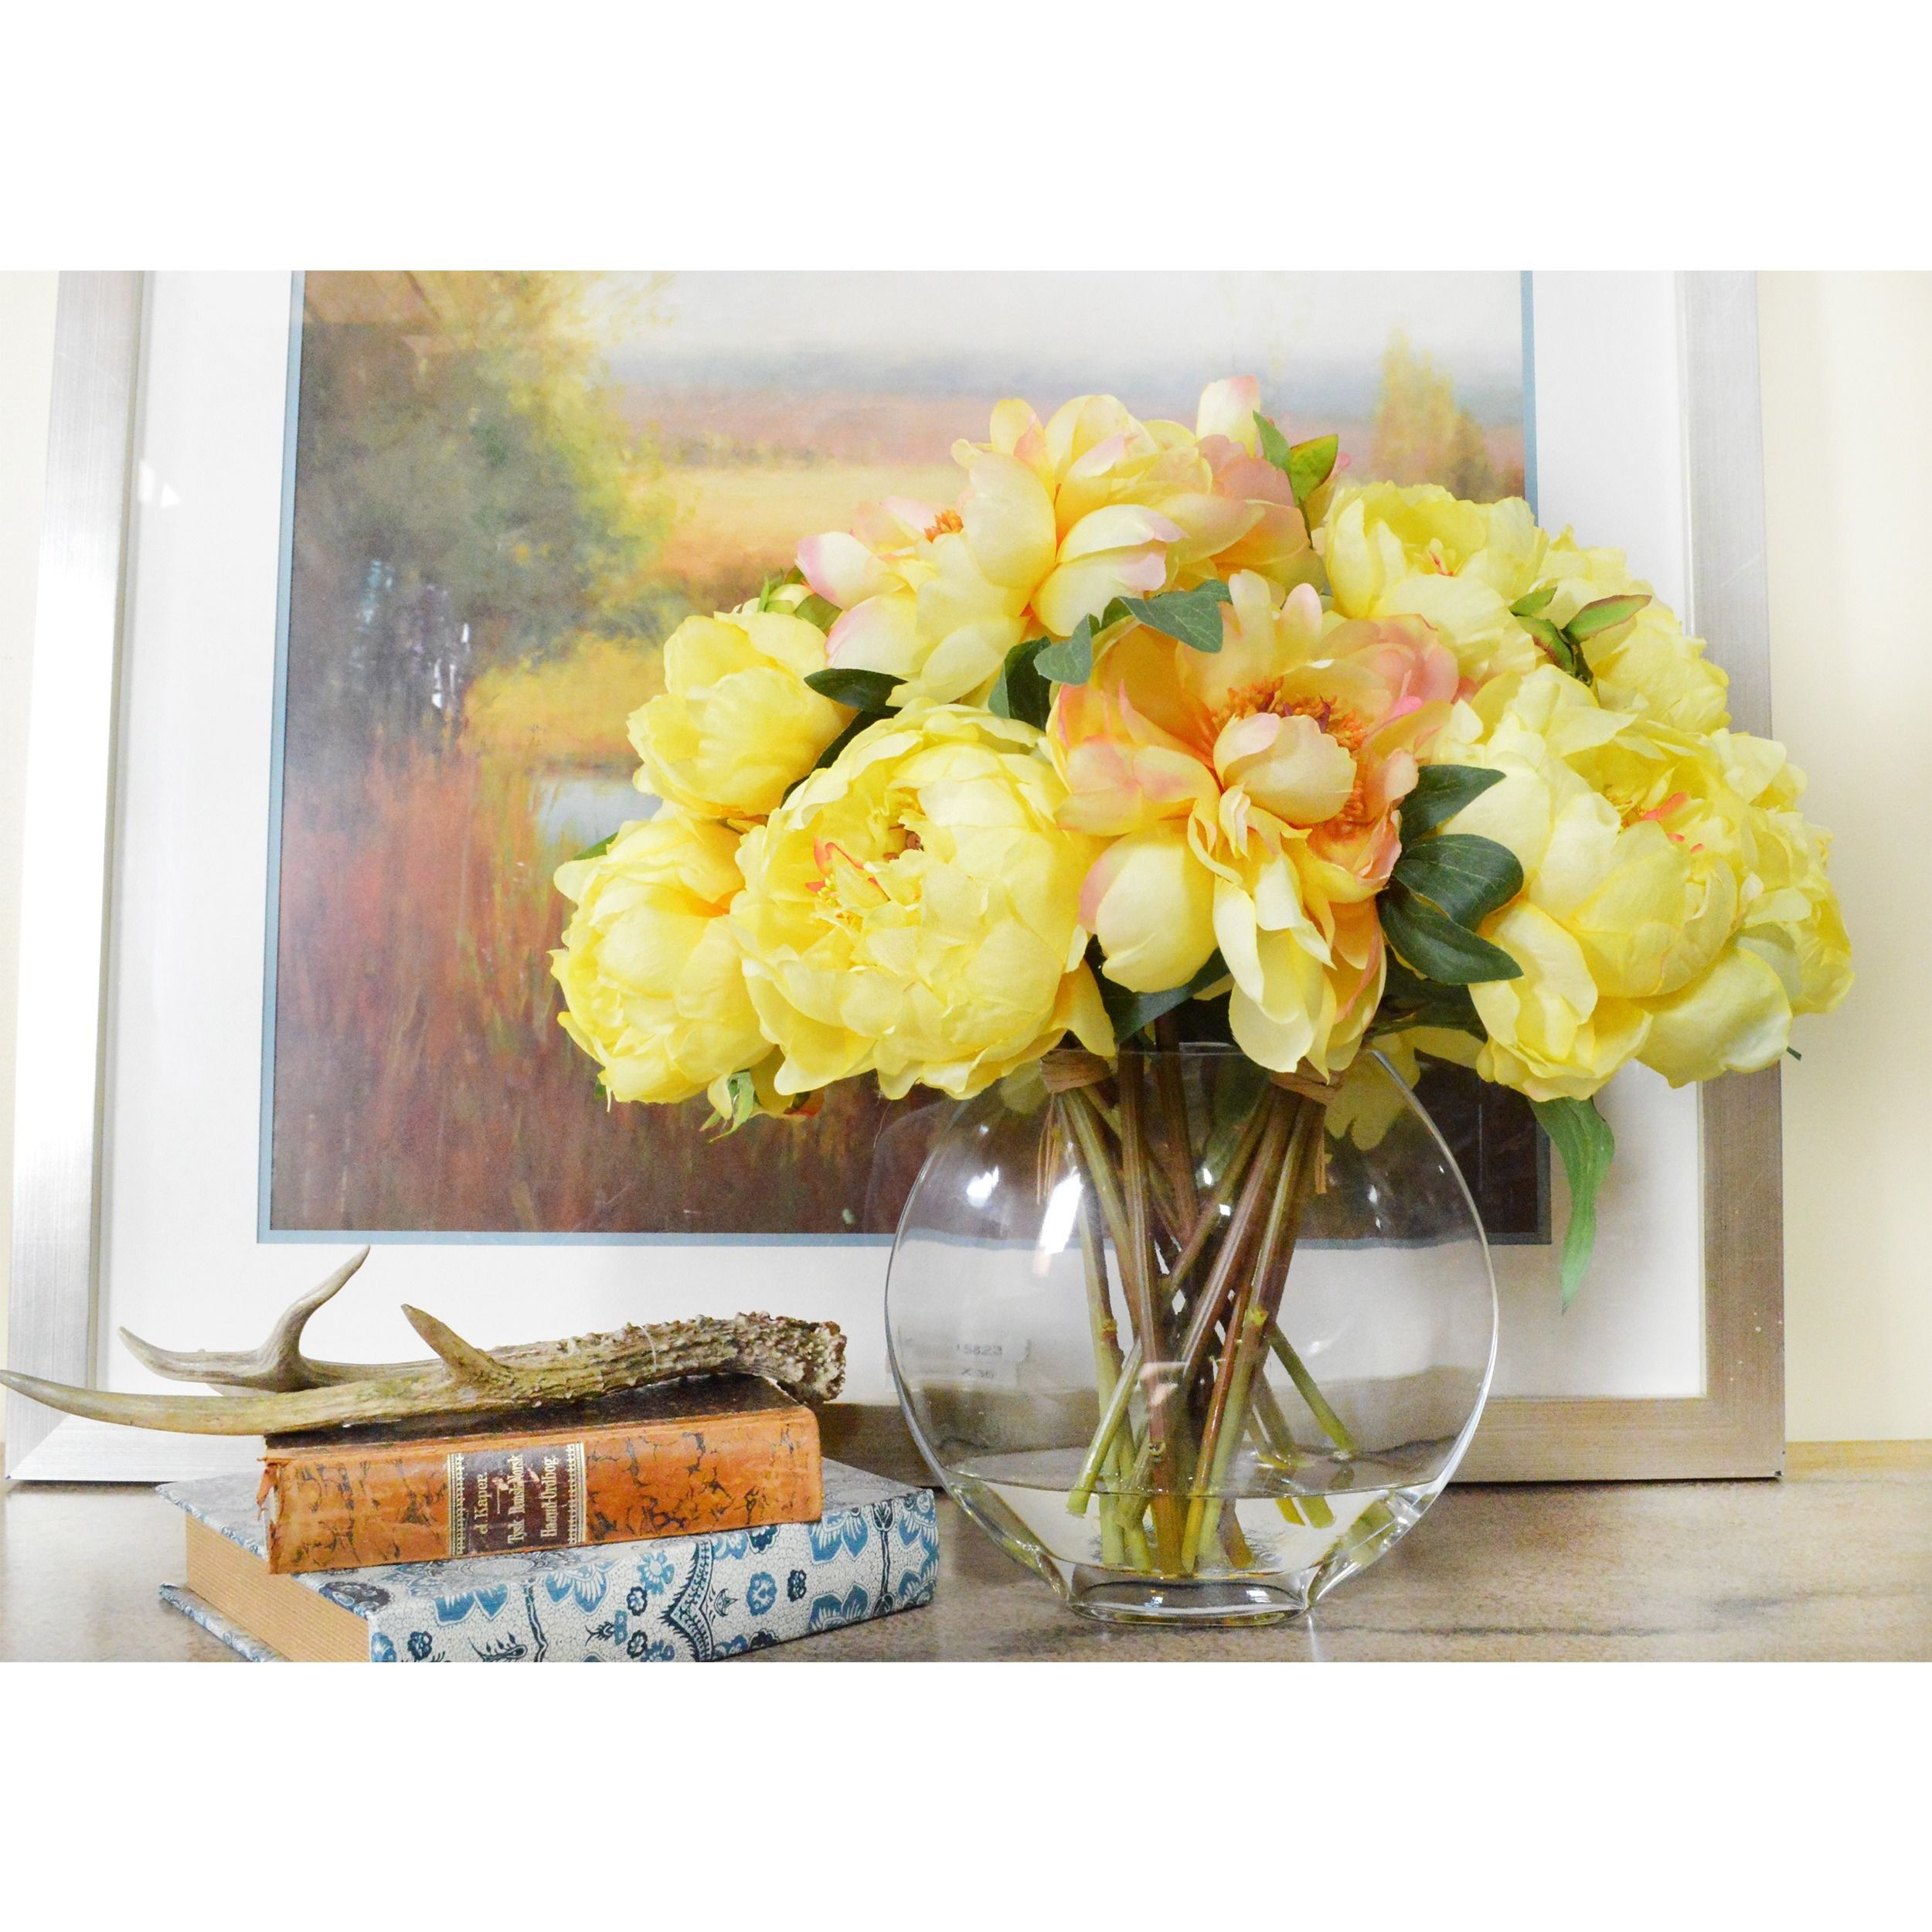 acrylic cylinder vase of creative displays bouquet of yellow peonies in a round acrylic pertaining to creative displays bouquet of yellow peonies in a round acrylic water filled glass vase 22 w x 20 h x 19 l